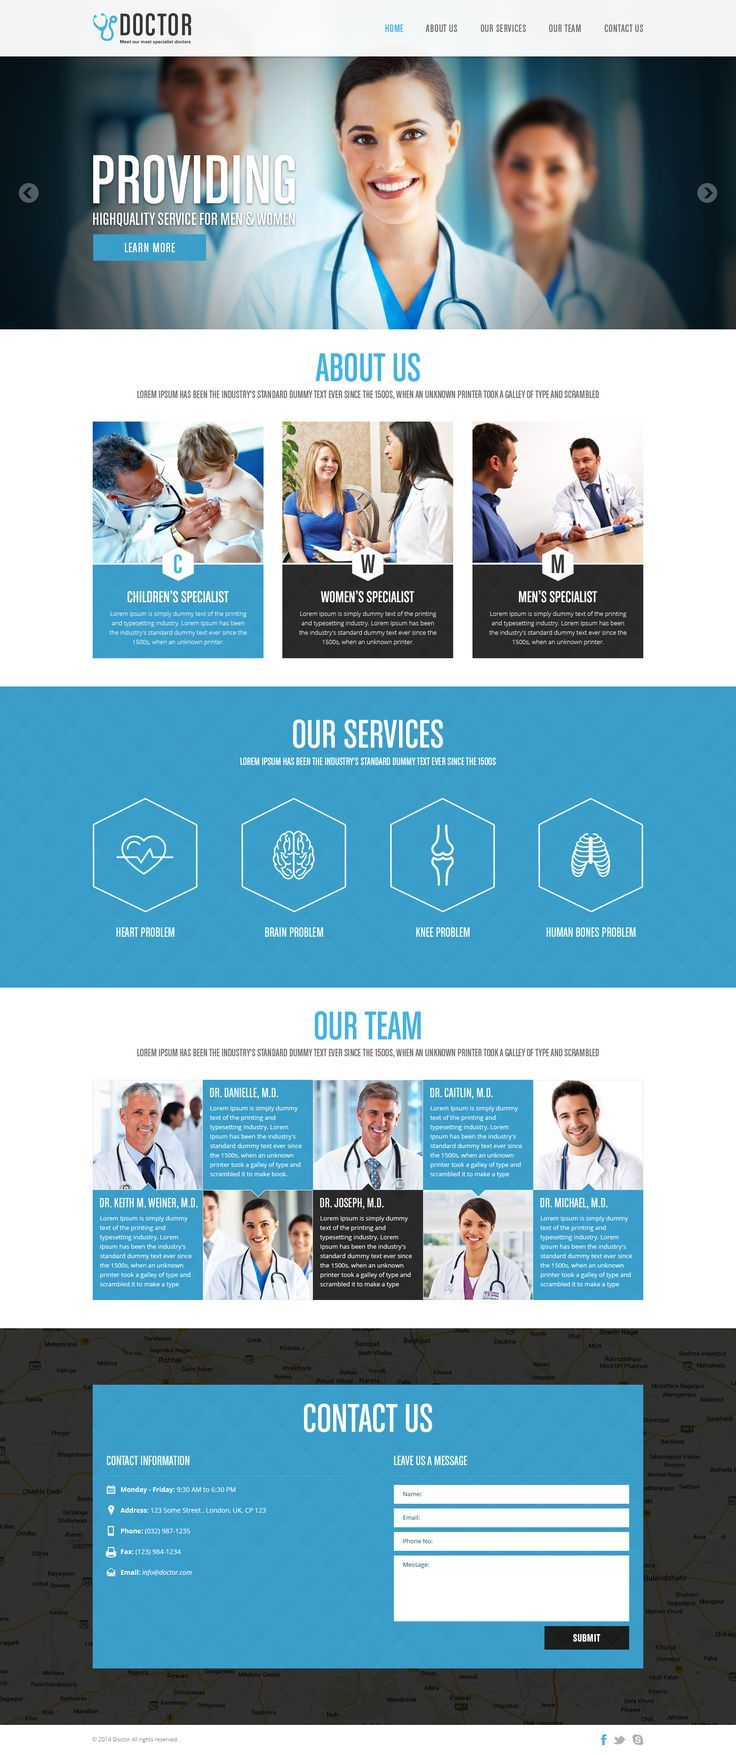 A very simple free PSD template for medical industry